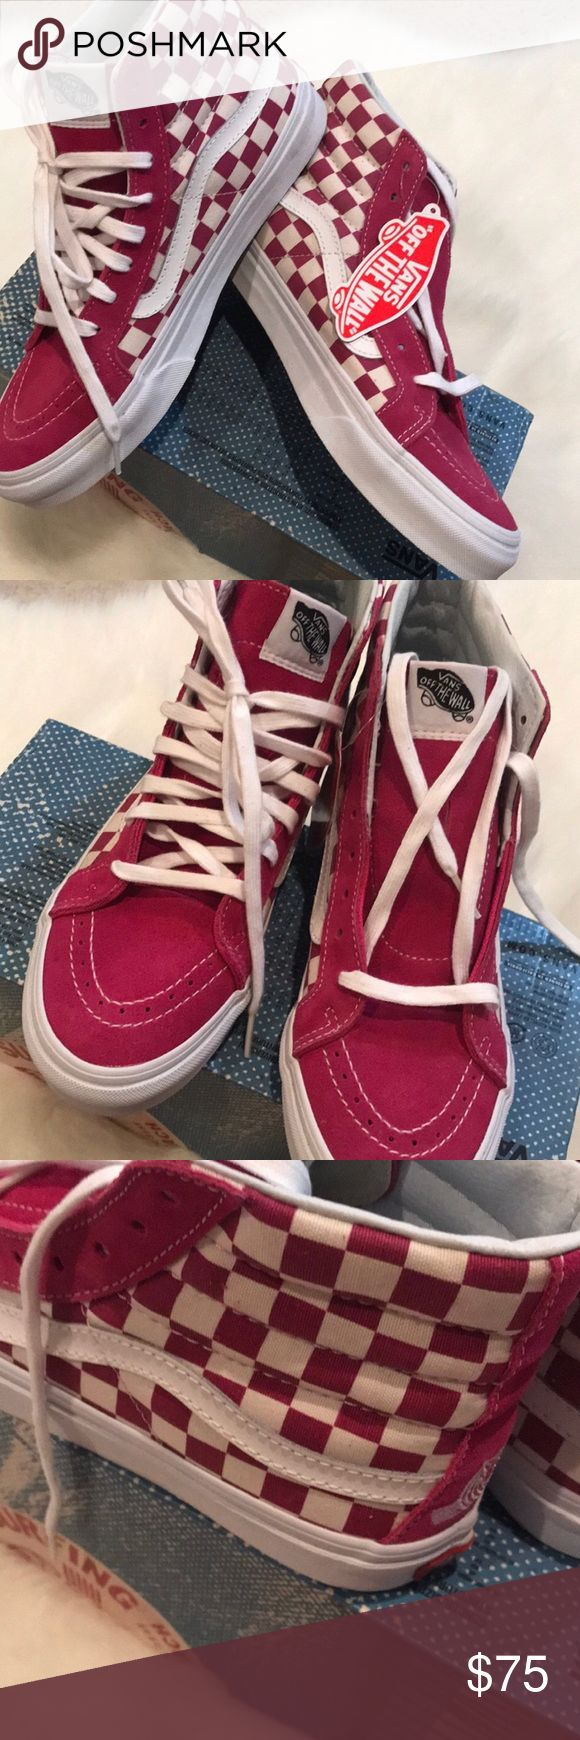 Special Edition NWT Vans checkered surf rider sz8 Special Edition NWT Vans fushia suede and berry/white checkered canvas surf rider classics sk8-hi. Size 8. Box with no lid. Cool surfer embroidery on back. Posh Ambassador 775+ items sold with perfect 5 star rating. Vans Shoes Sneakers